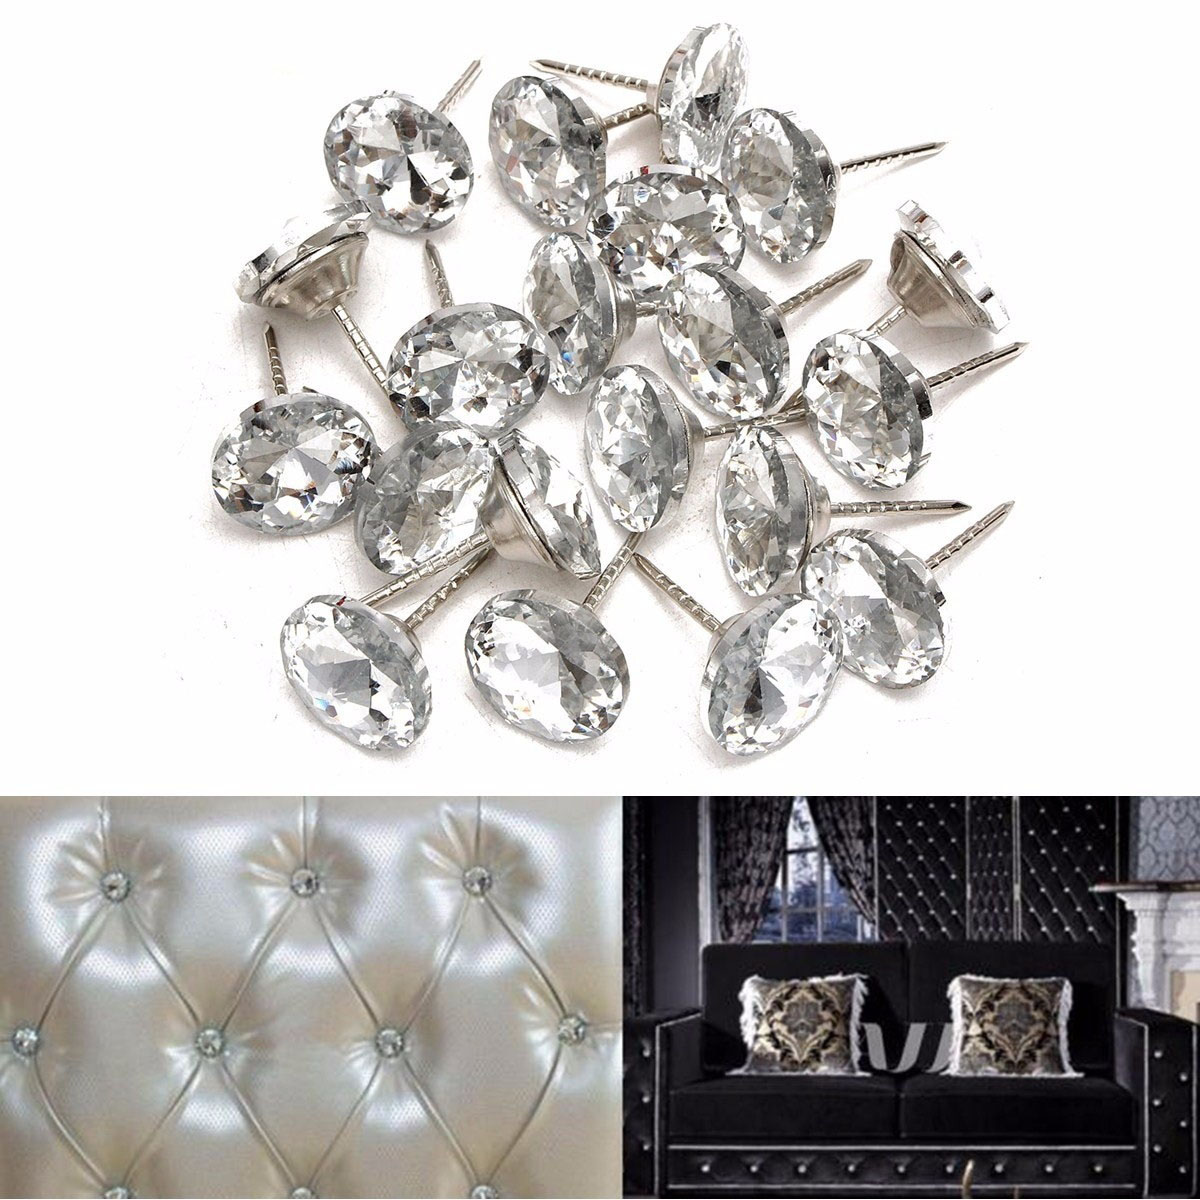 20pcs Per Pack Crystal Buckle Soft Bag Sofa Nails Diamond Buckle Diamond Buttons Background Decorative Buckle